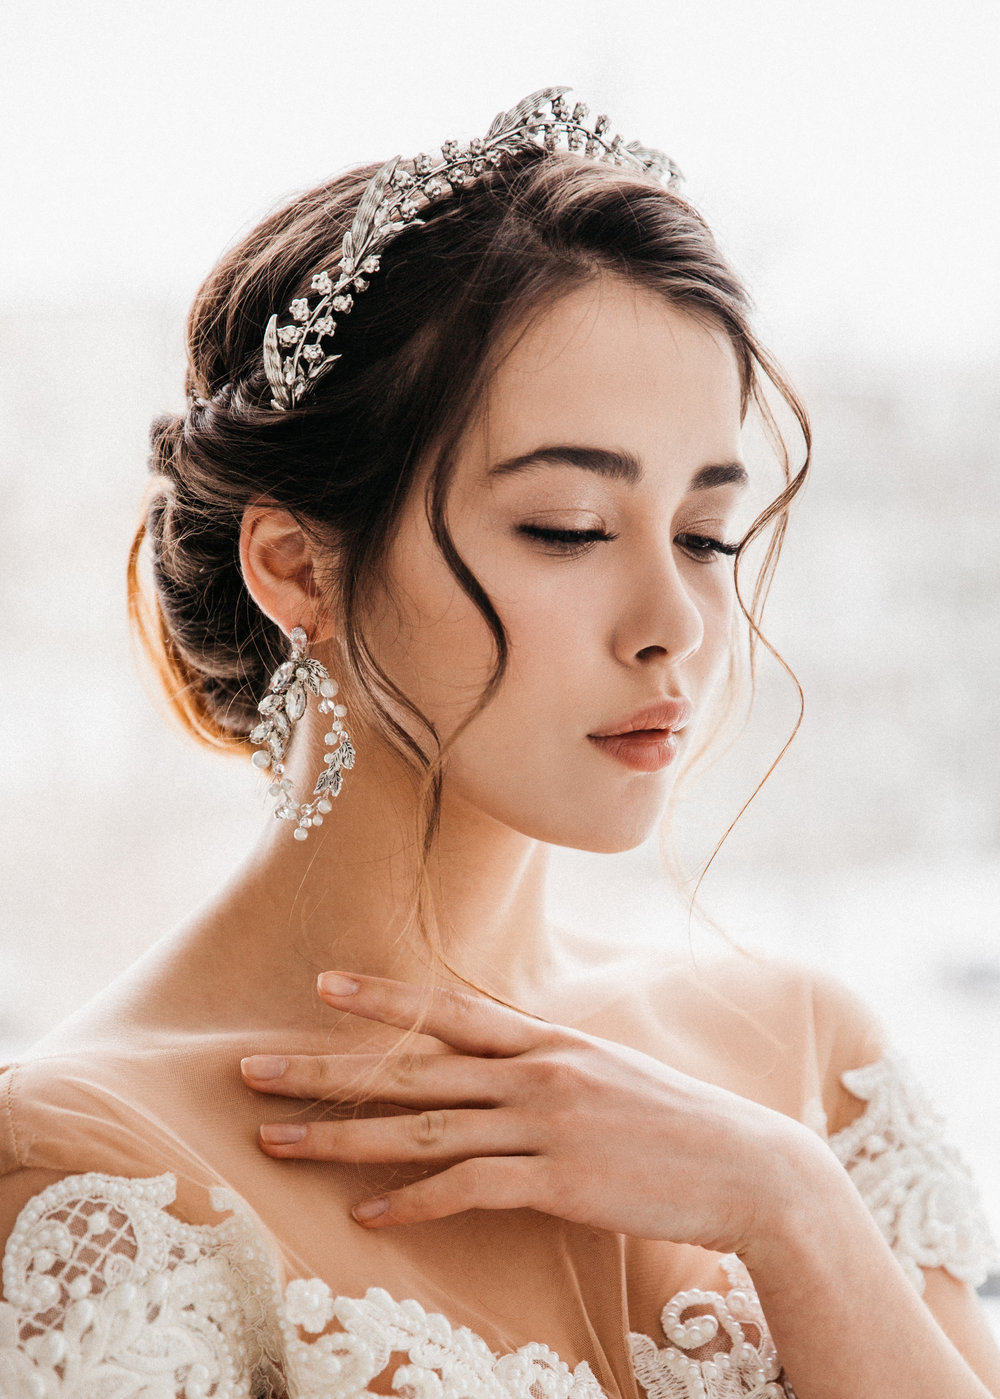 Find your perfect Bridal Hair Accessory - Handmade in SwitzerlandUnique DesignPossibility to Rush OrdersFree Shipping WorldwideCustomisable OrdersFast response on your questions